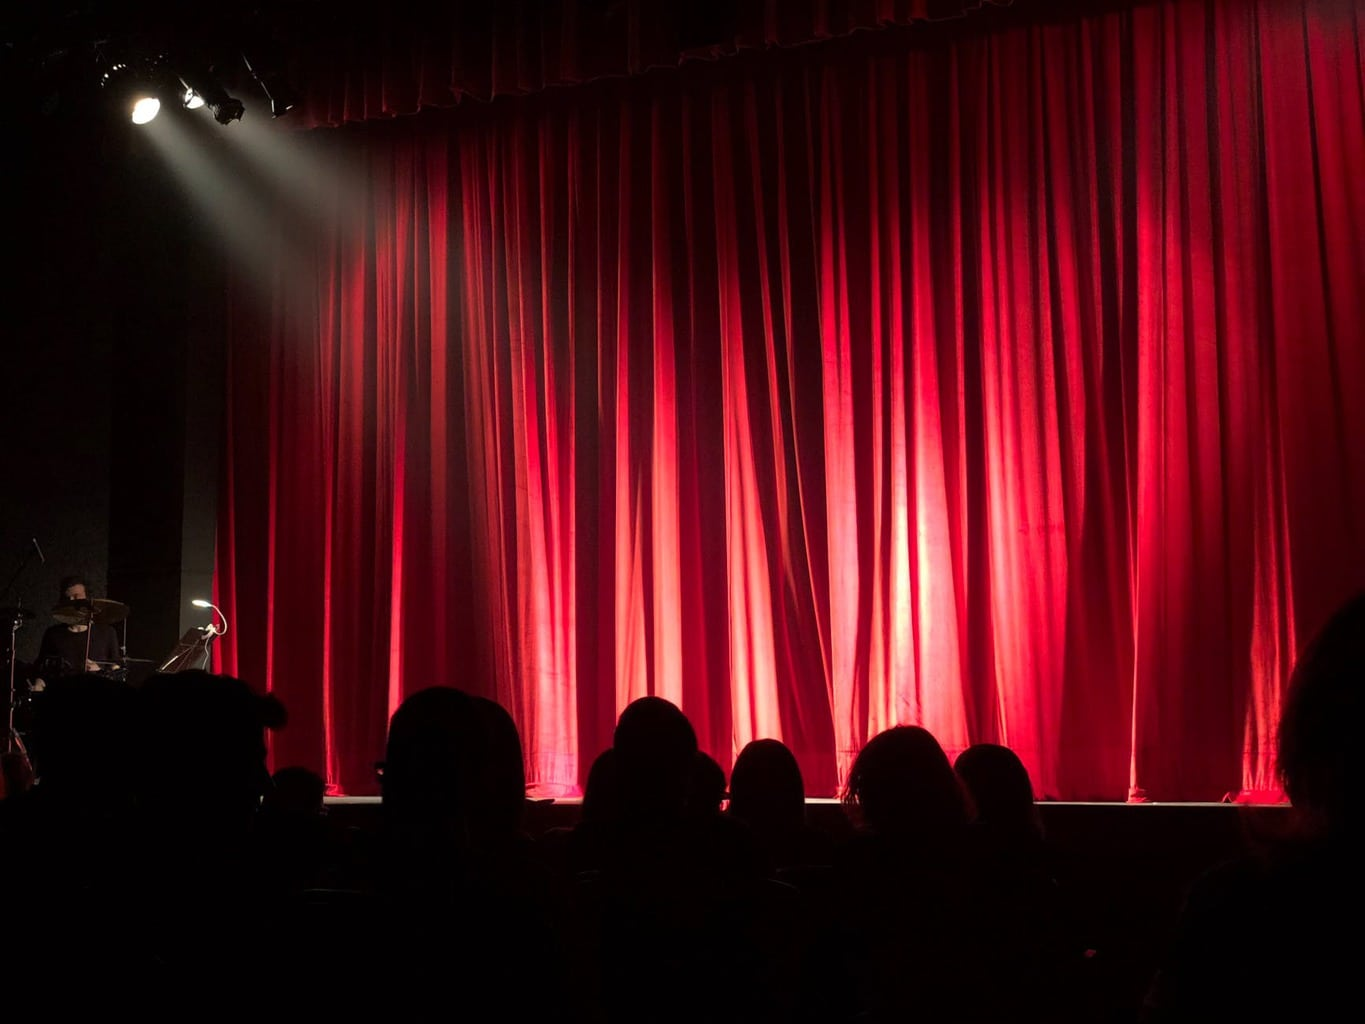 People at a theater with a red curtain and lights